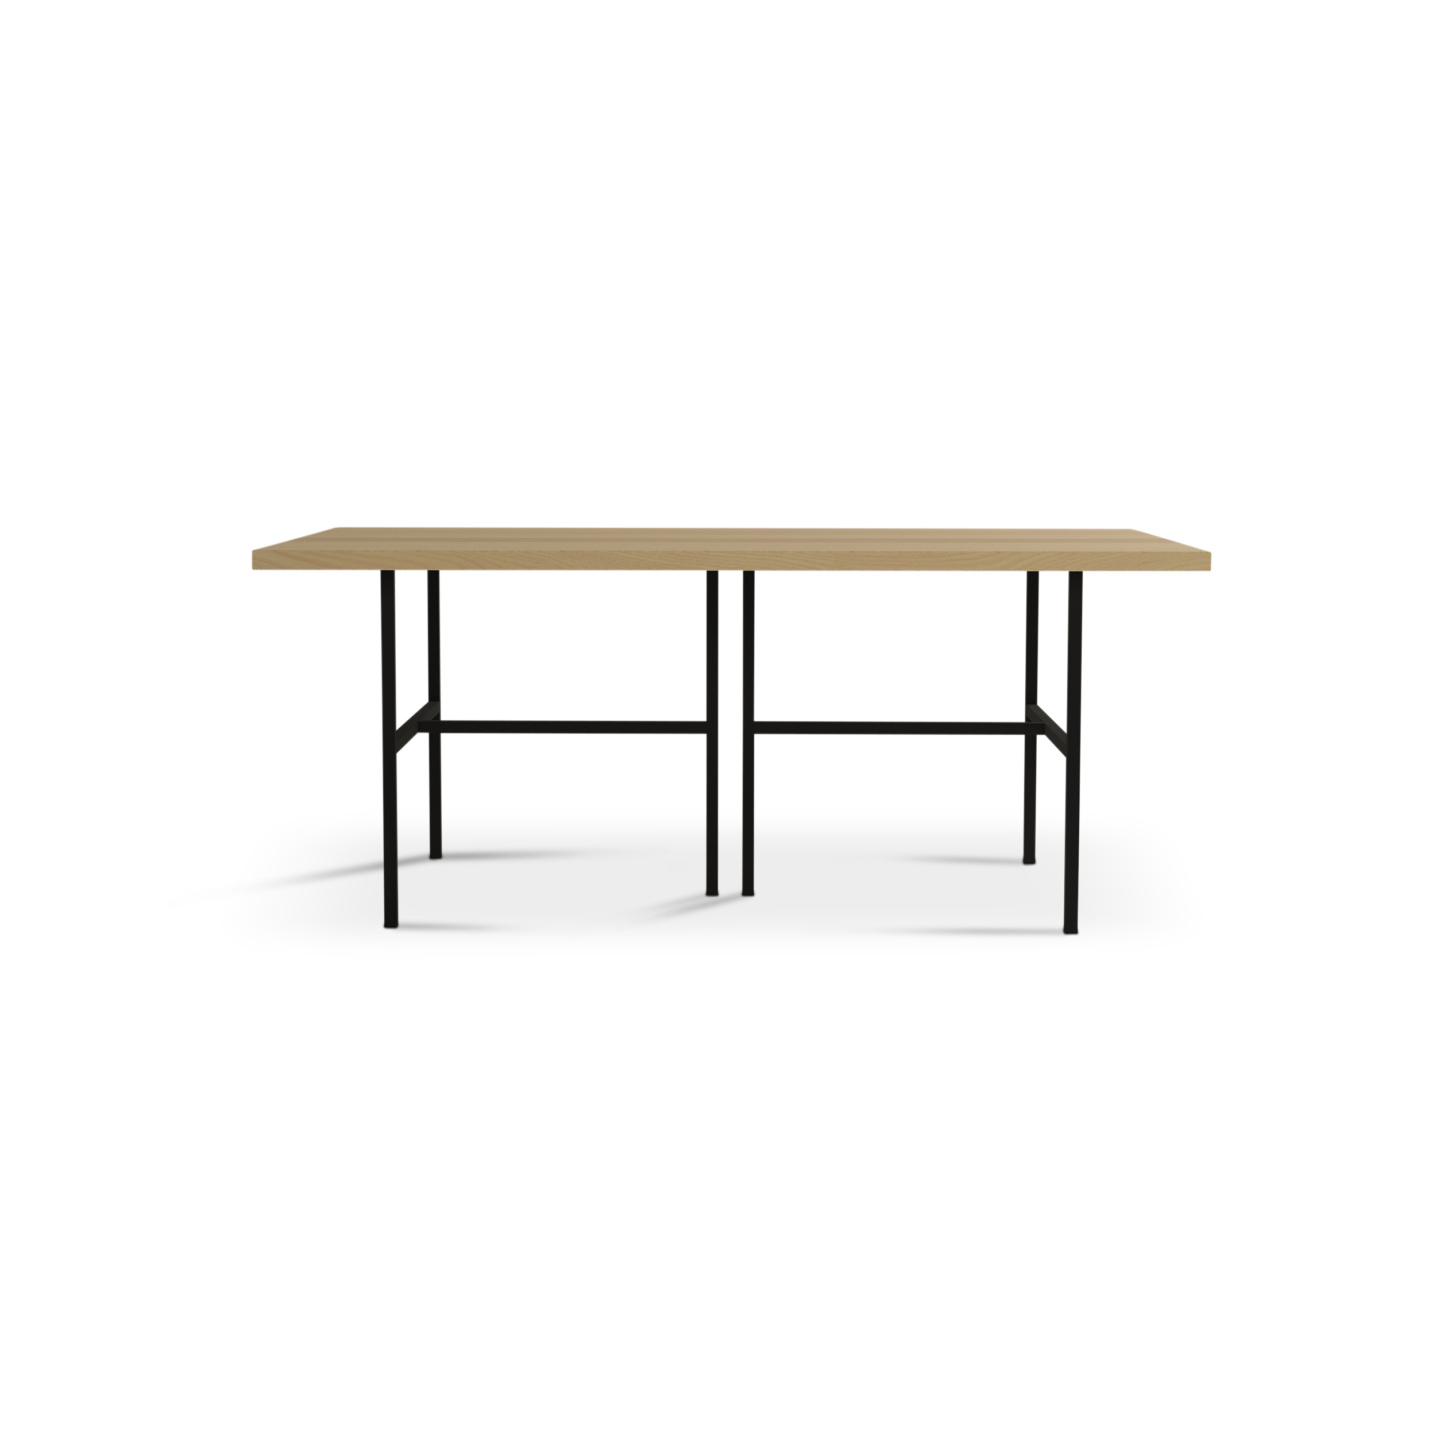 Six foot solid ash kitchen table on black metal legs